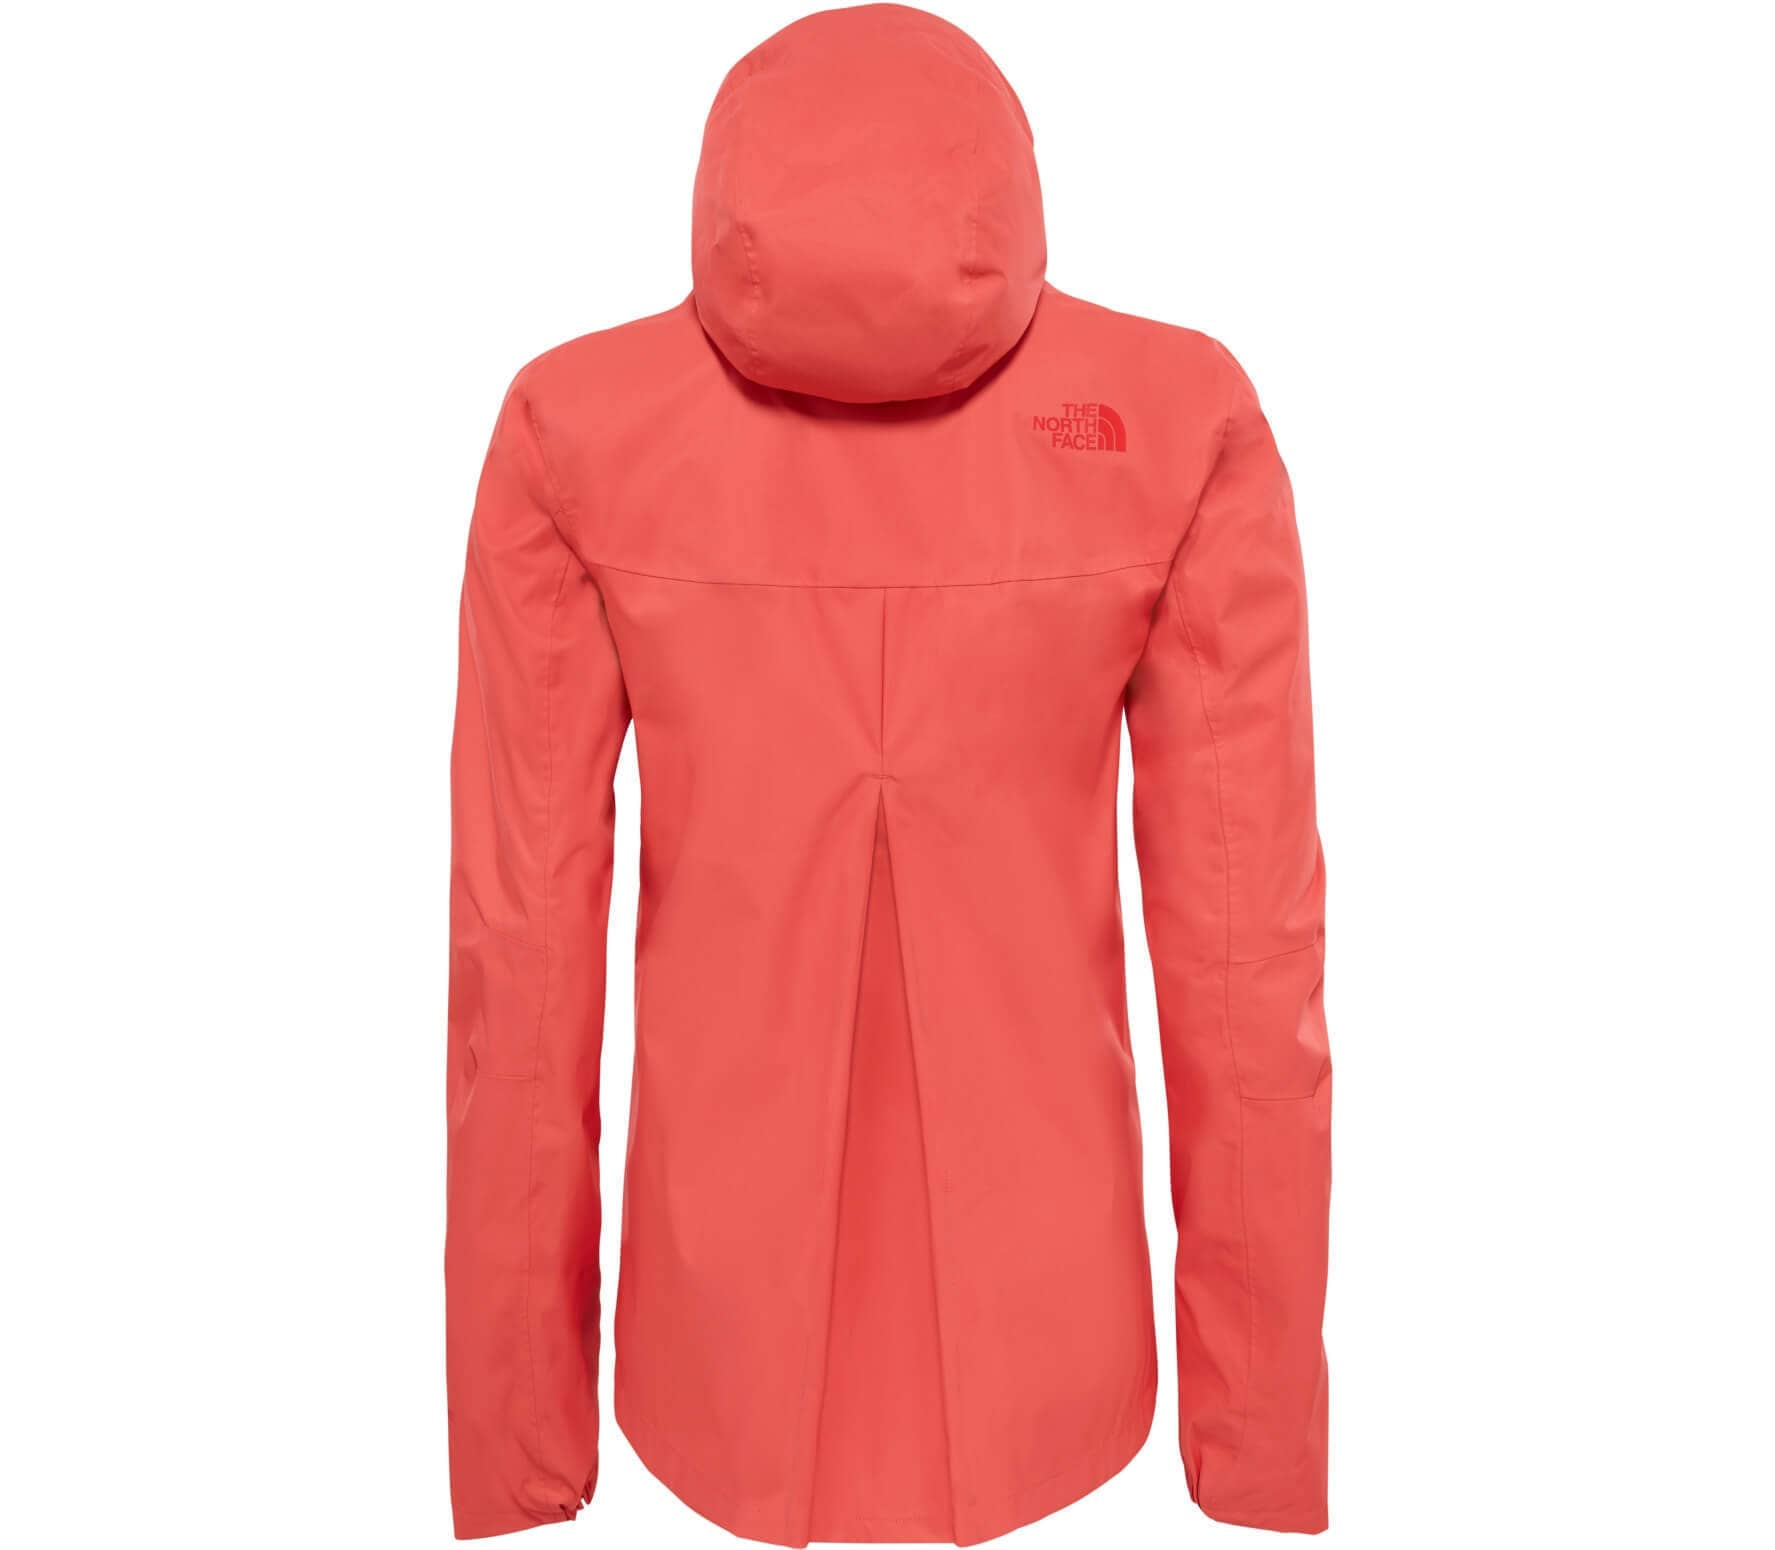 e3f17b2fc8ff42 The North Face - Tanken Damen Regenjacke (hellrot) im Online Shop ...